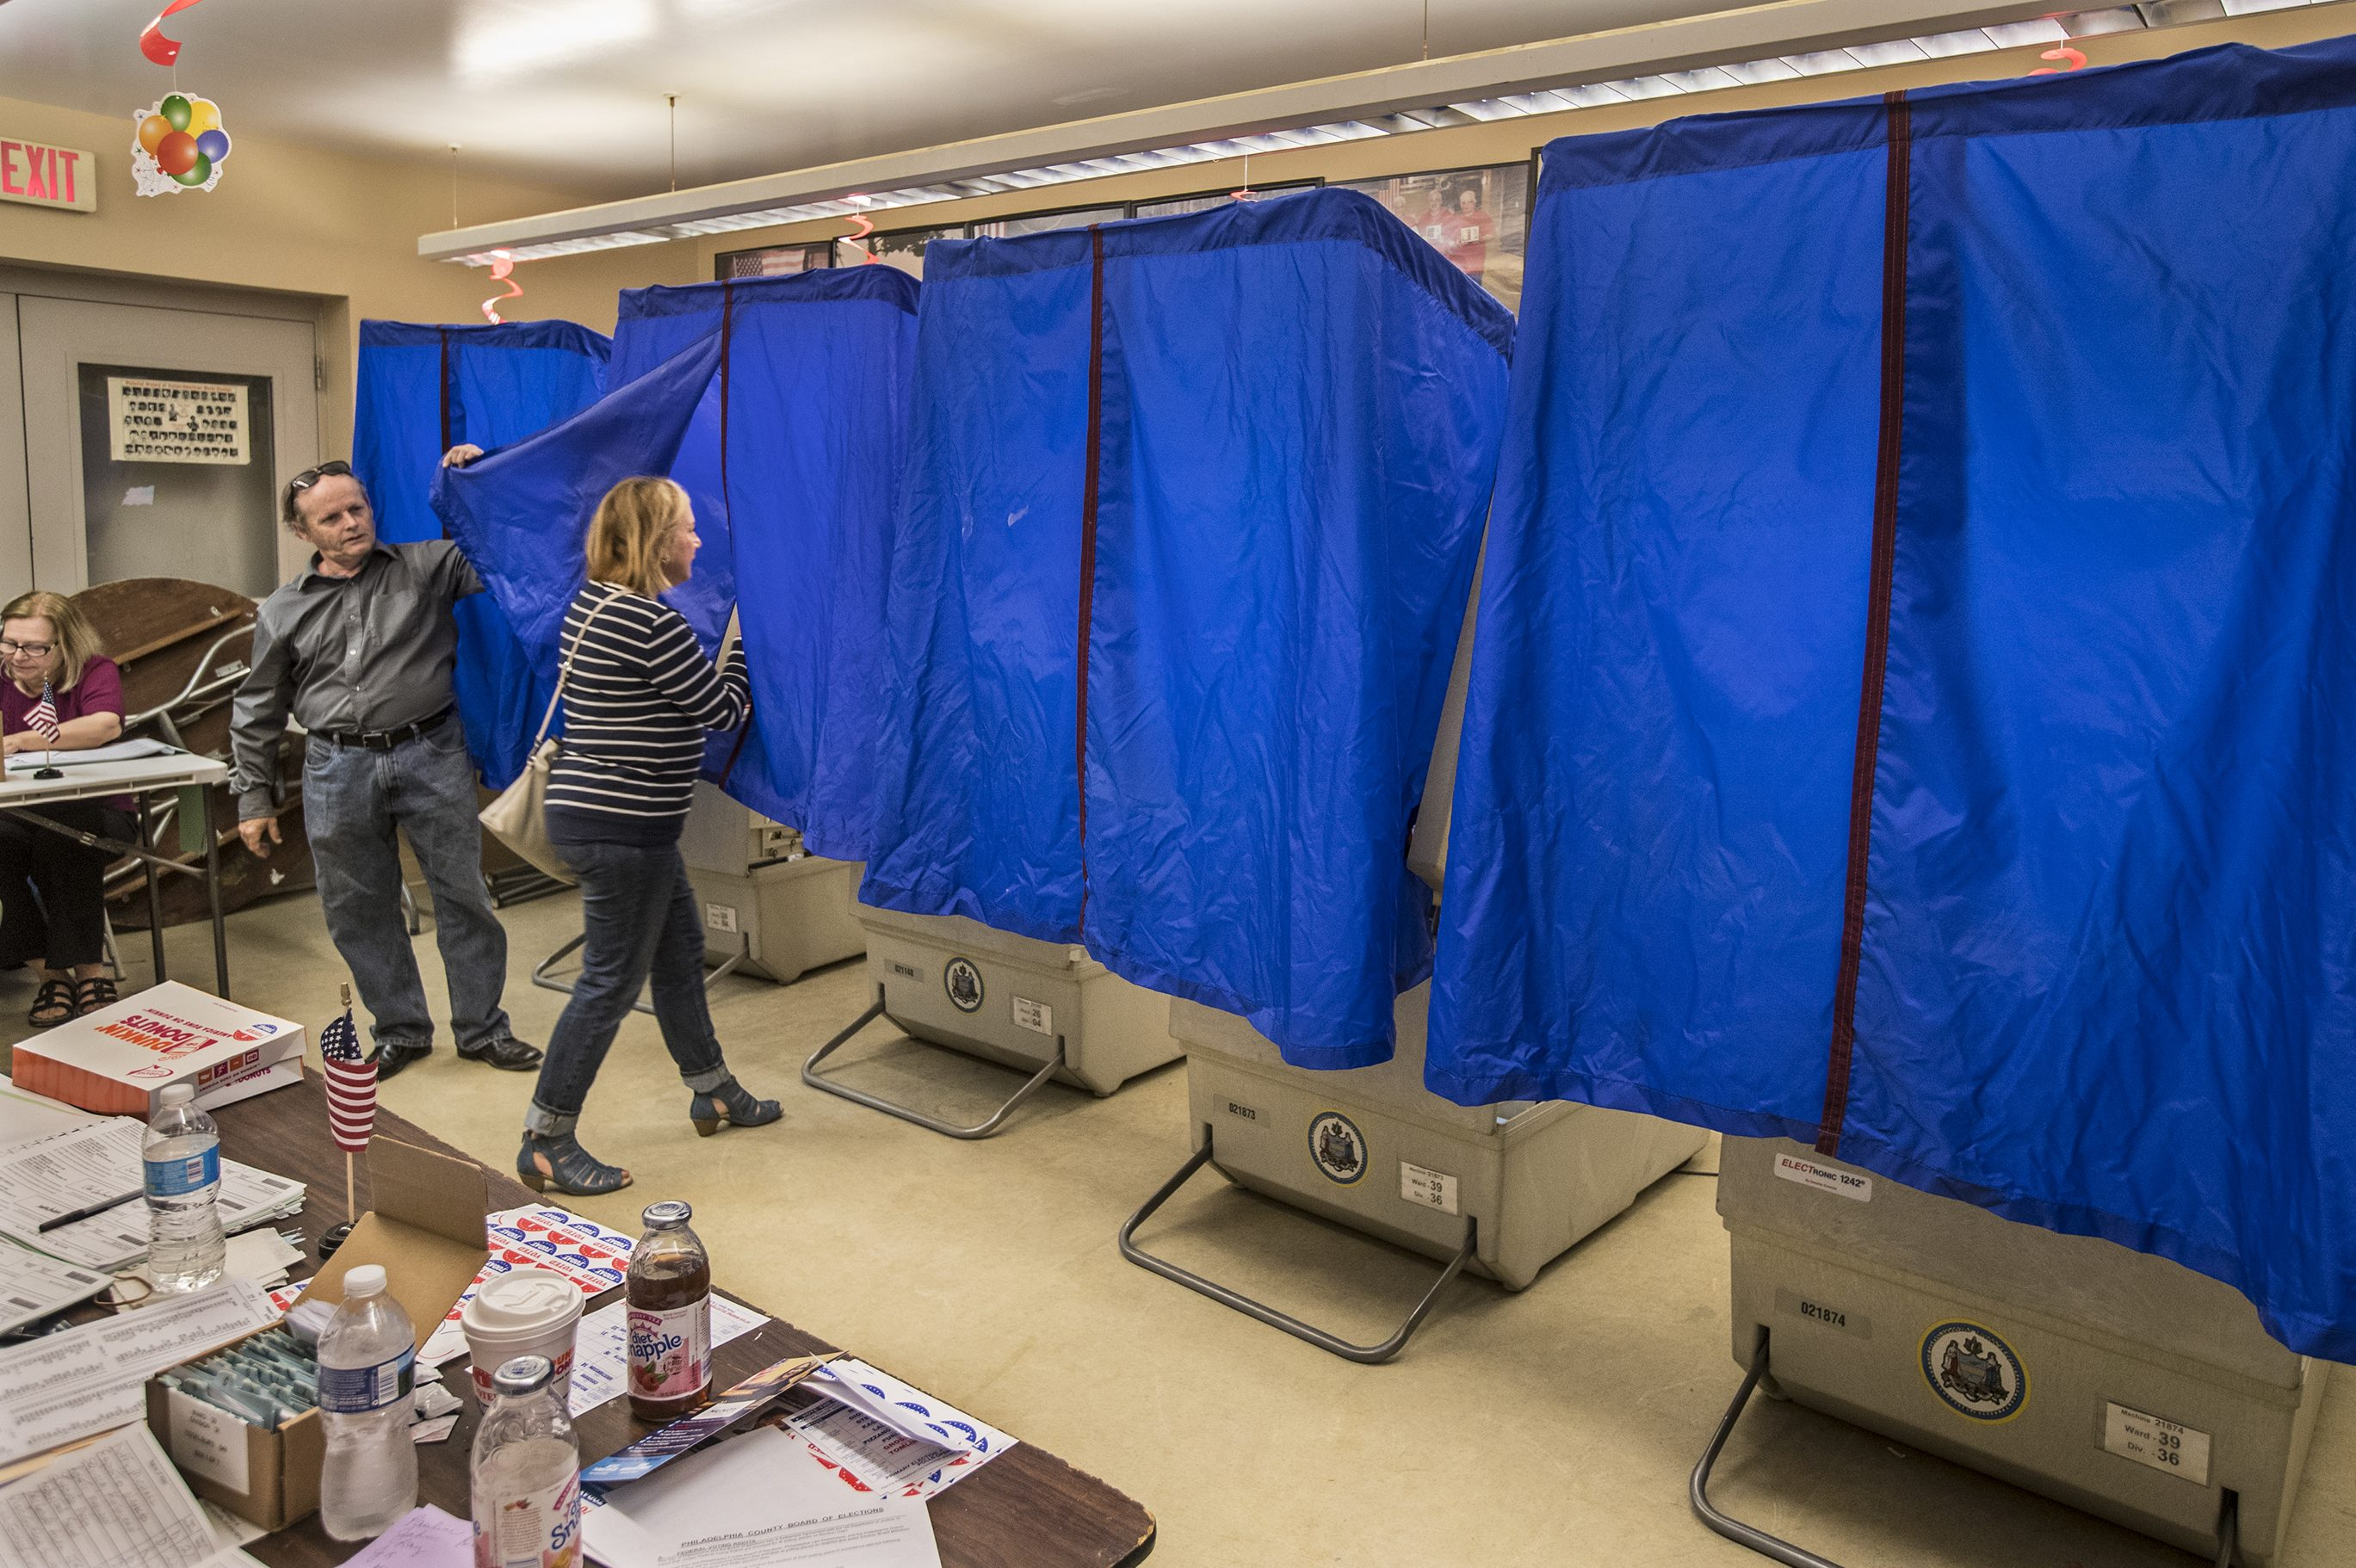 A polling place at the bocci court at Marconi Plaza in Philadelphia during the 2017 primary elections.